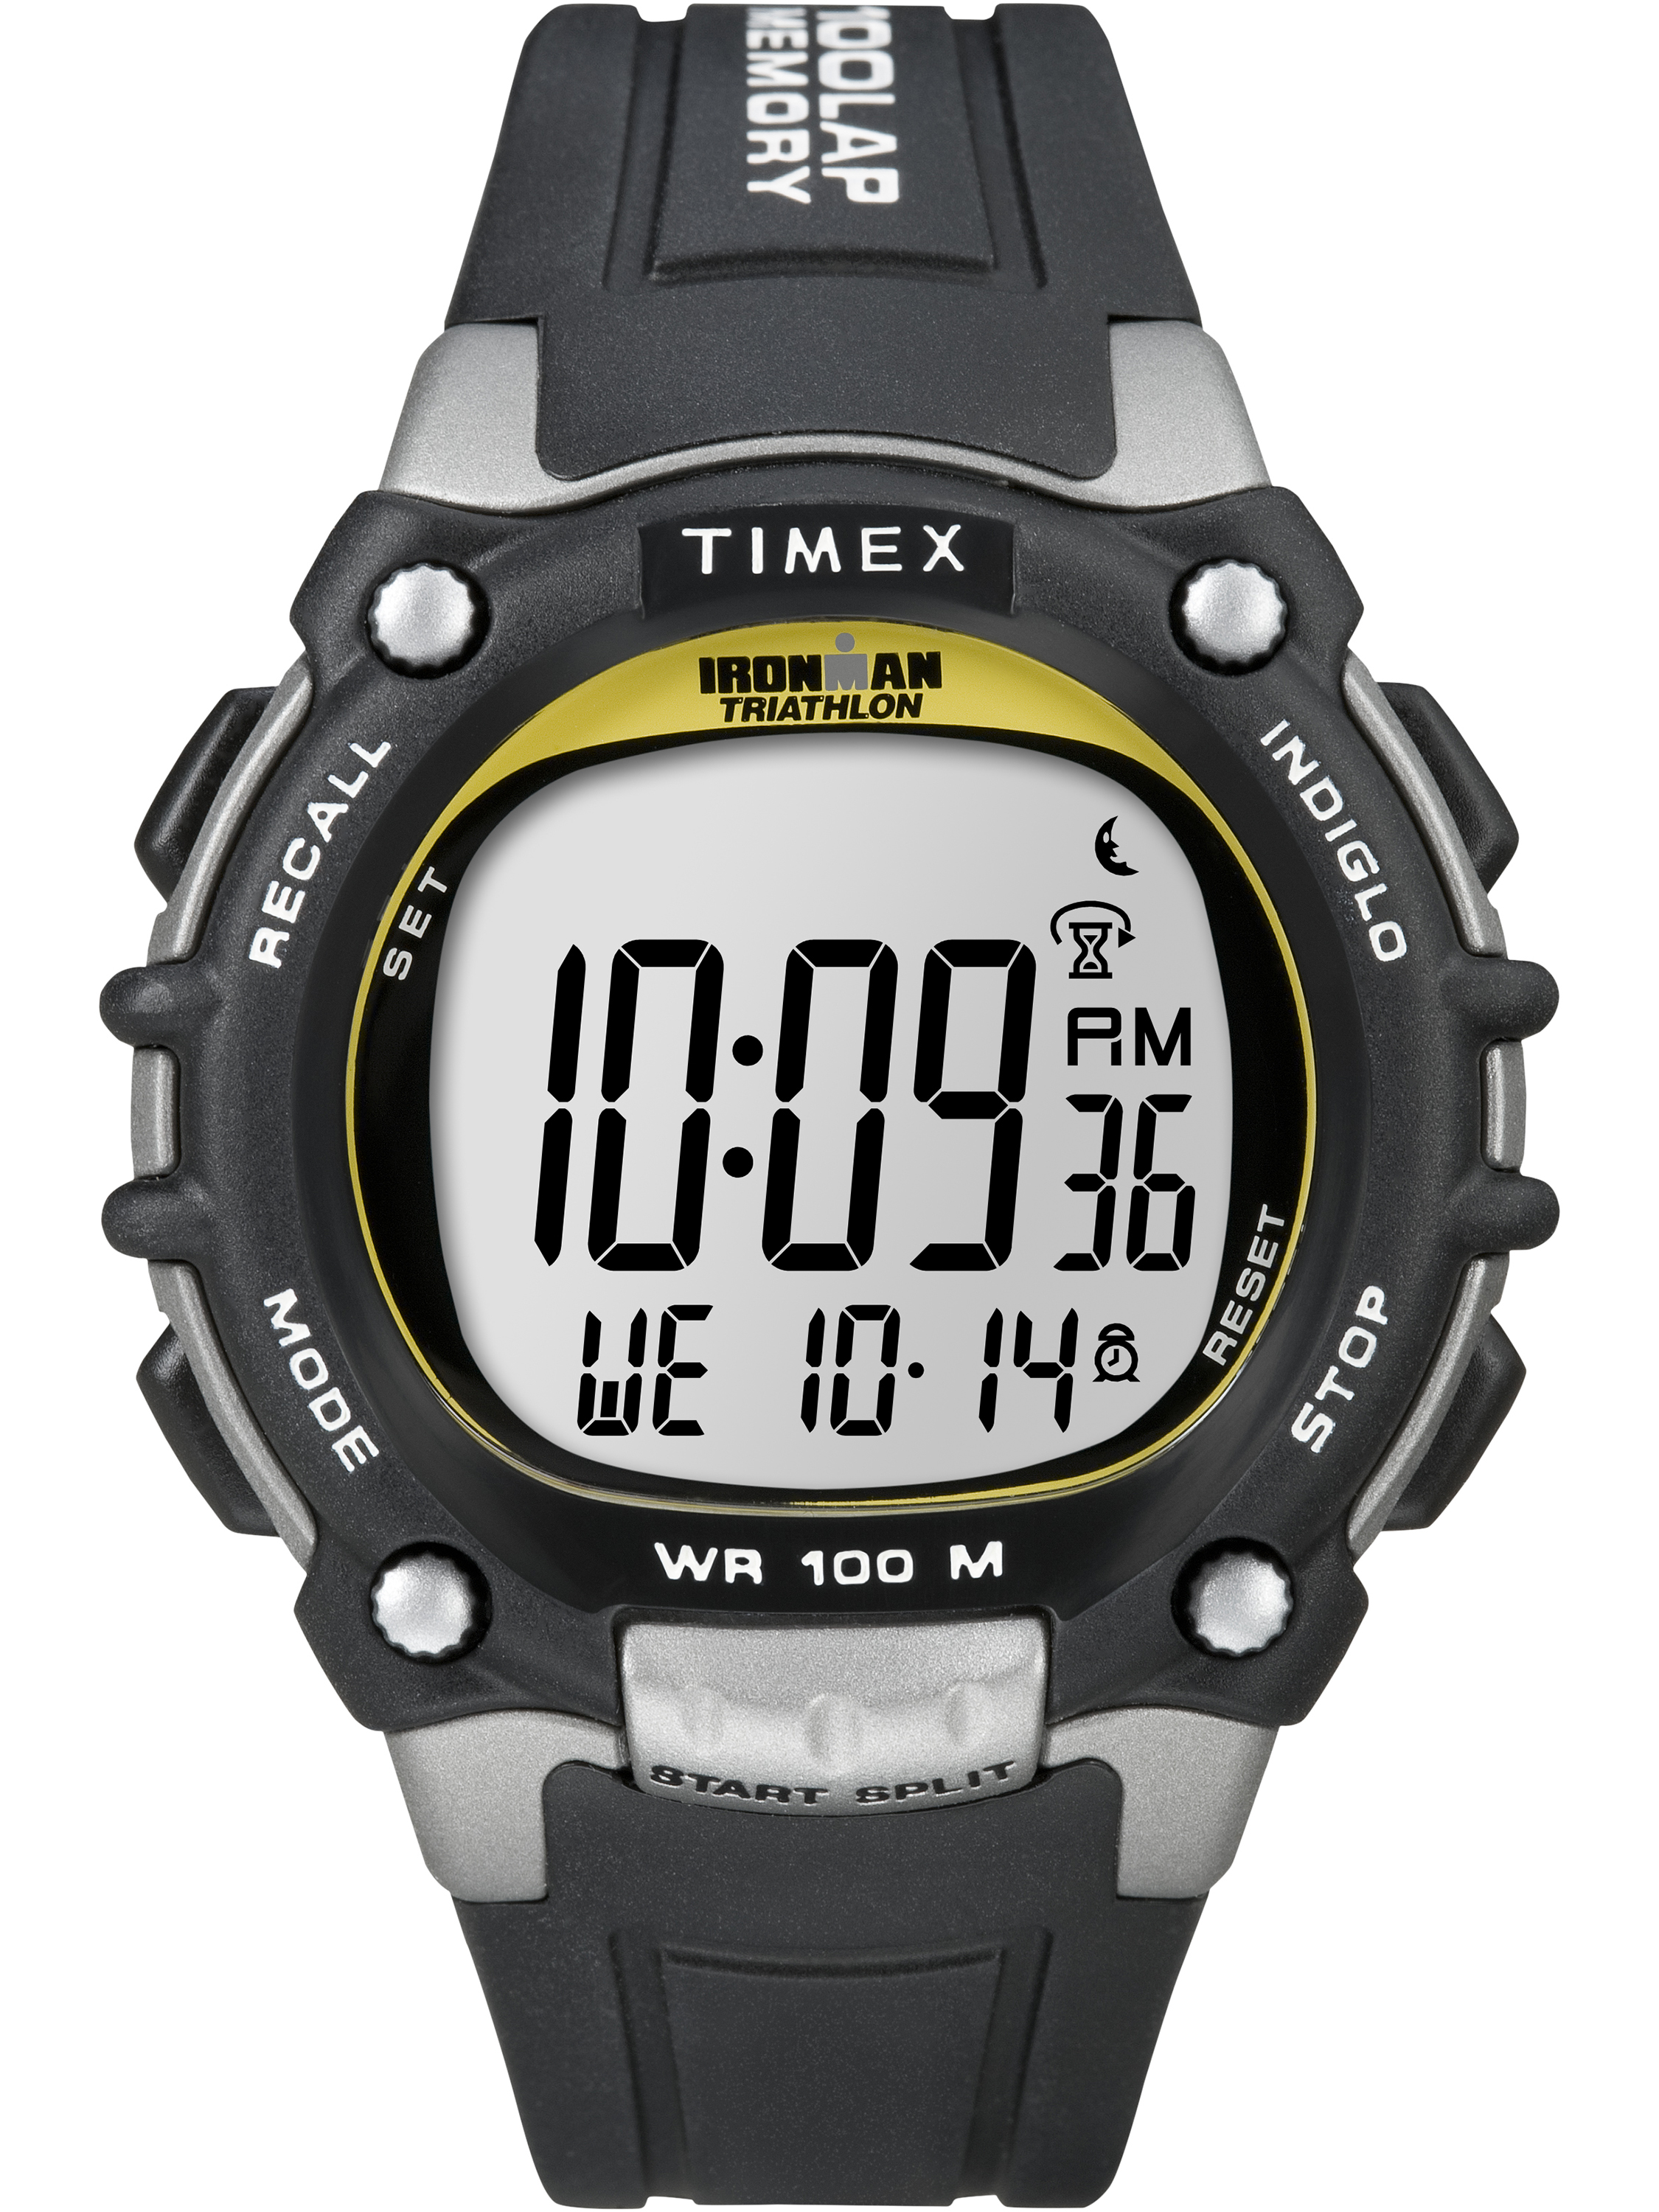 Timex Men's Ironman Classic 100 Full-Size Watch, Black Resin Strap by Timex